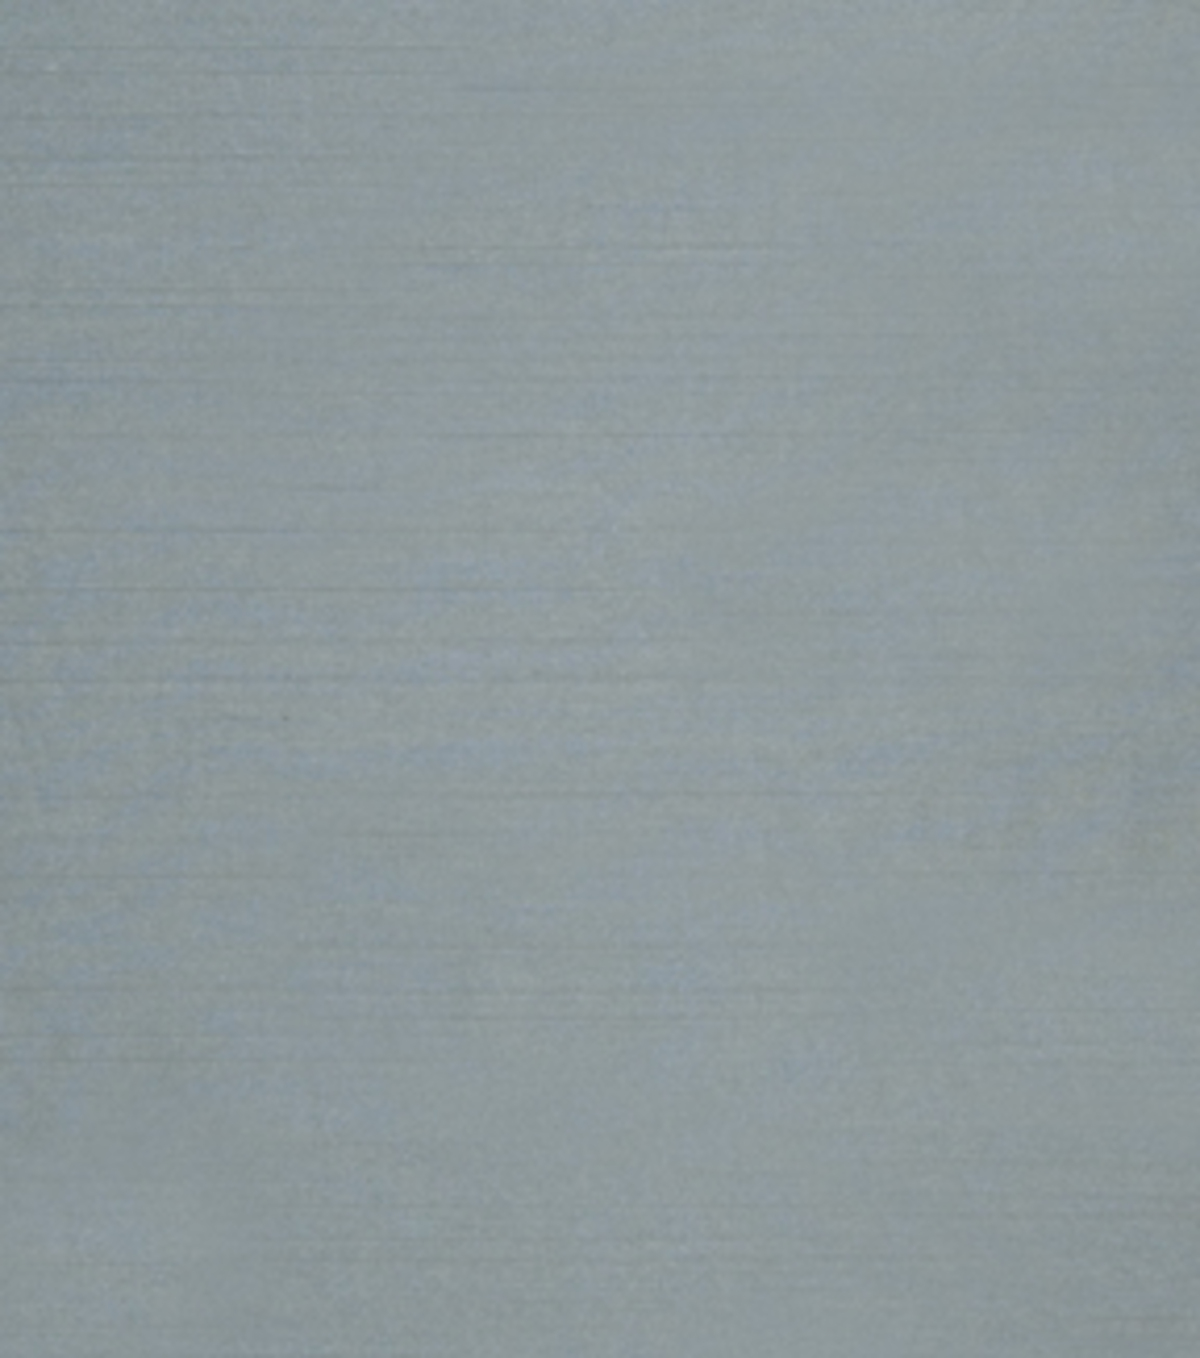 Home Decor 8\u0022x8\u0022 Fabric Swatch-Signature Series Bravo Ocean